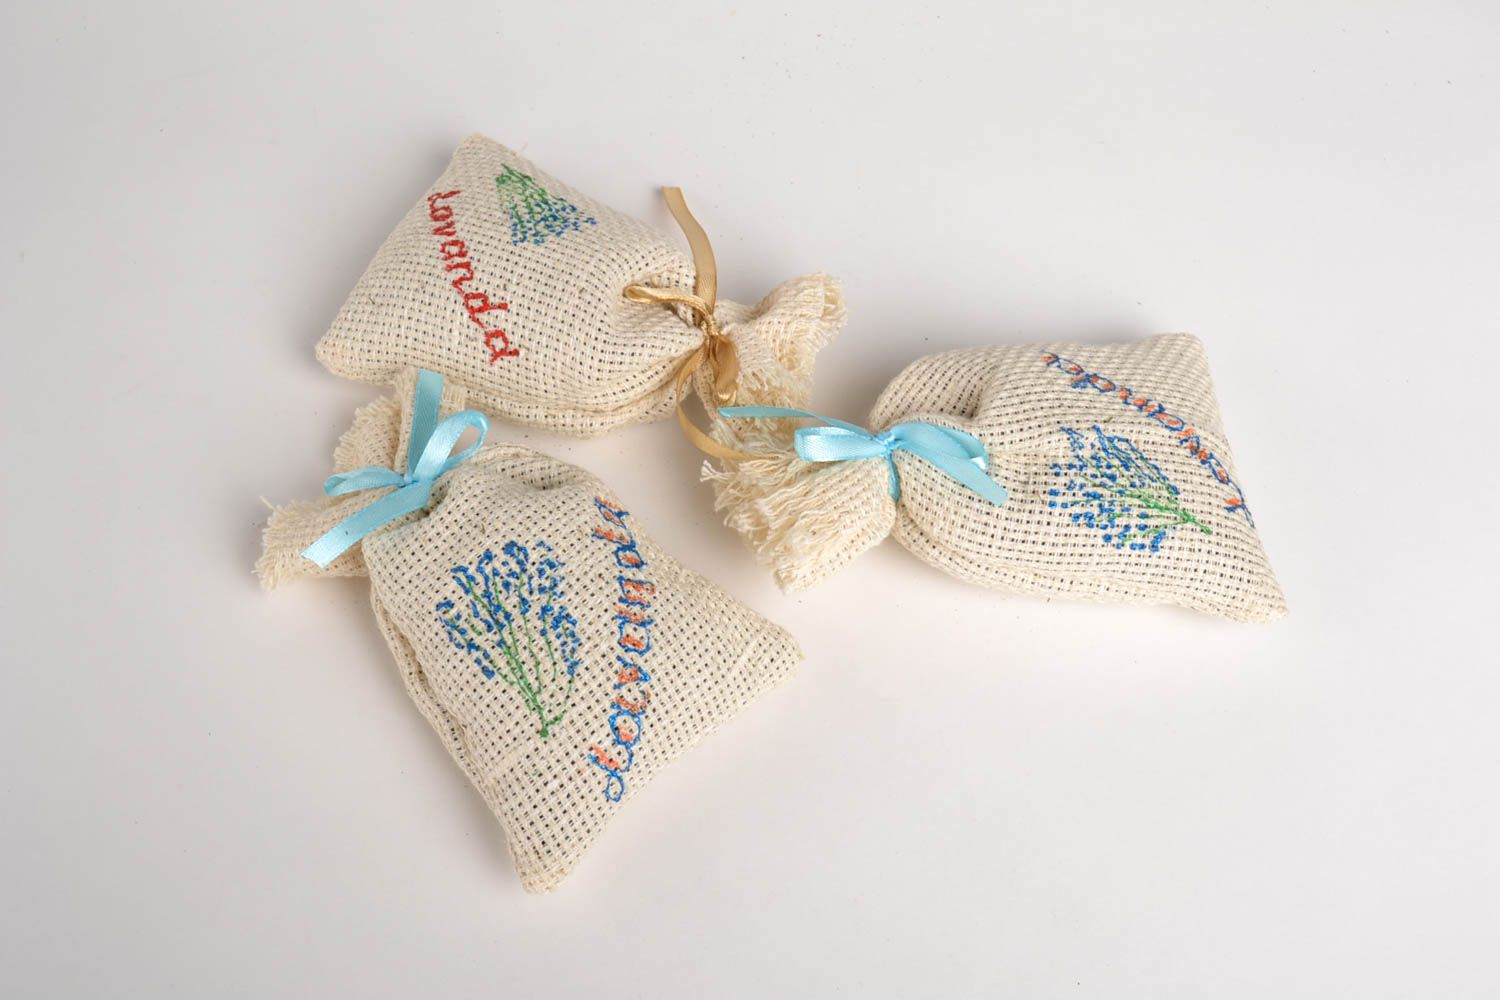 Handmade decorative sachet bag scented sachet bags 3 pieces small gifts photo 4